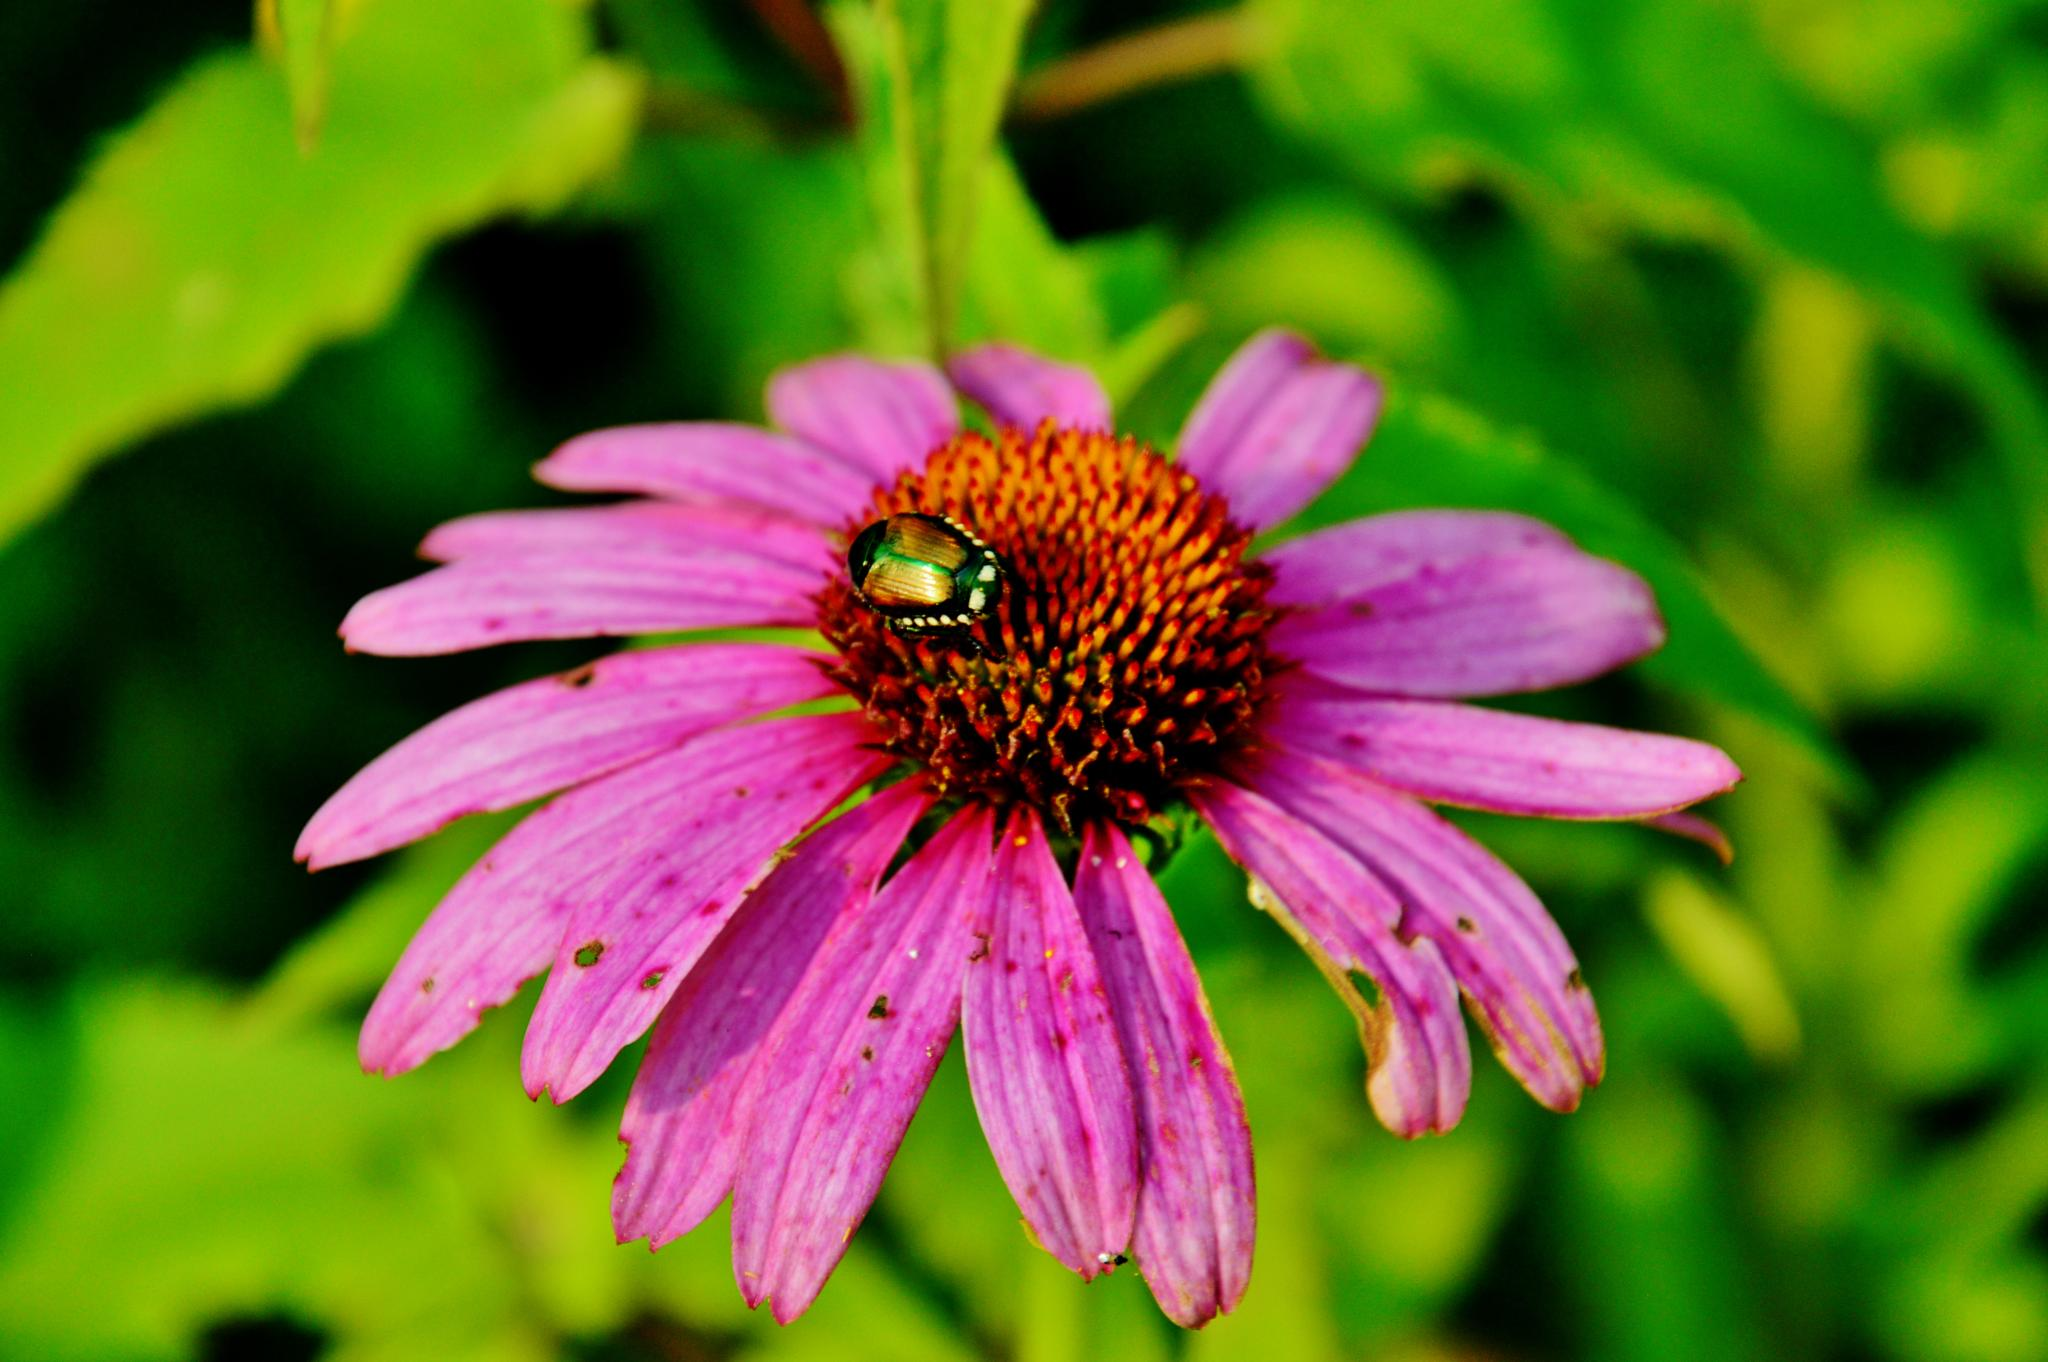 Bug on flower by Doug Fosnight